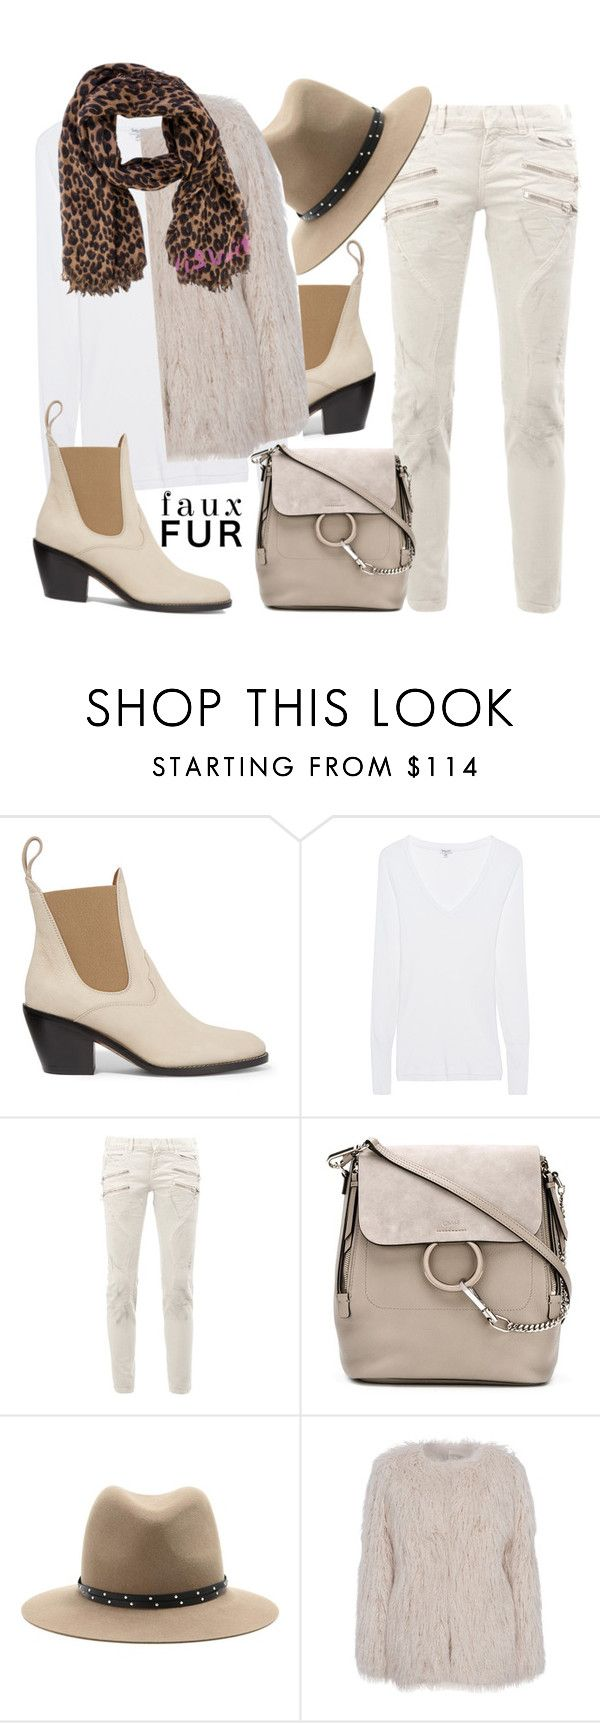 """""""How to Wear Animal..."""" by hattie4palmerstone ❤ liked on Polyvore featuring Chloé, Splendid, Faith Connexion, rag & bone, French Connection, Louis Vuitton and fauxfur"""